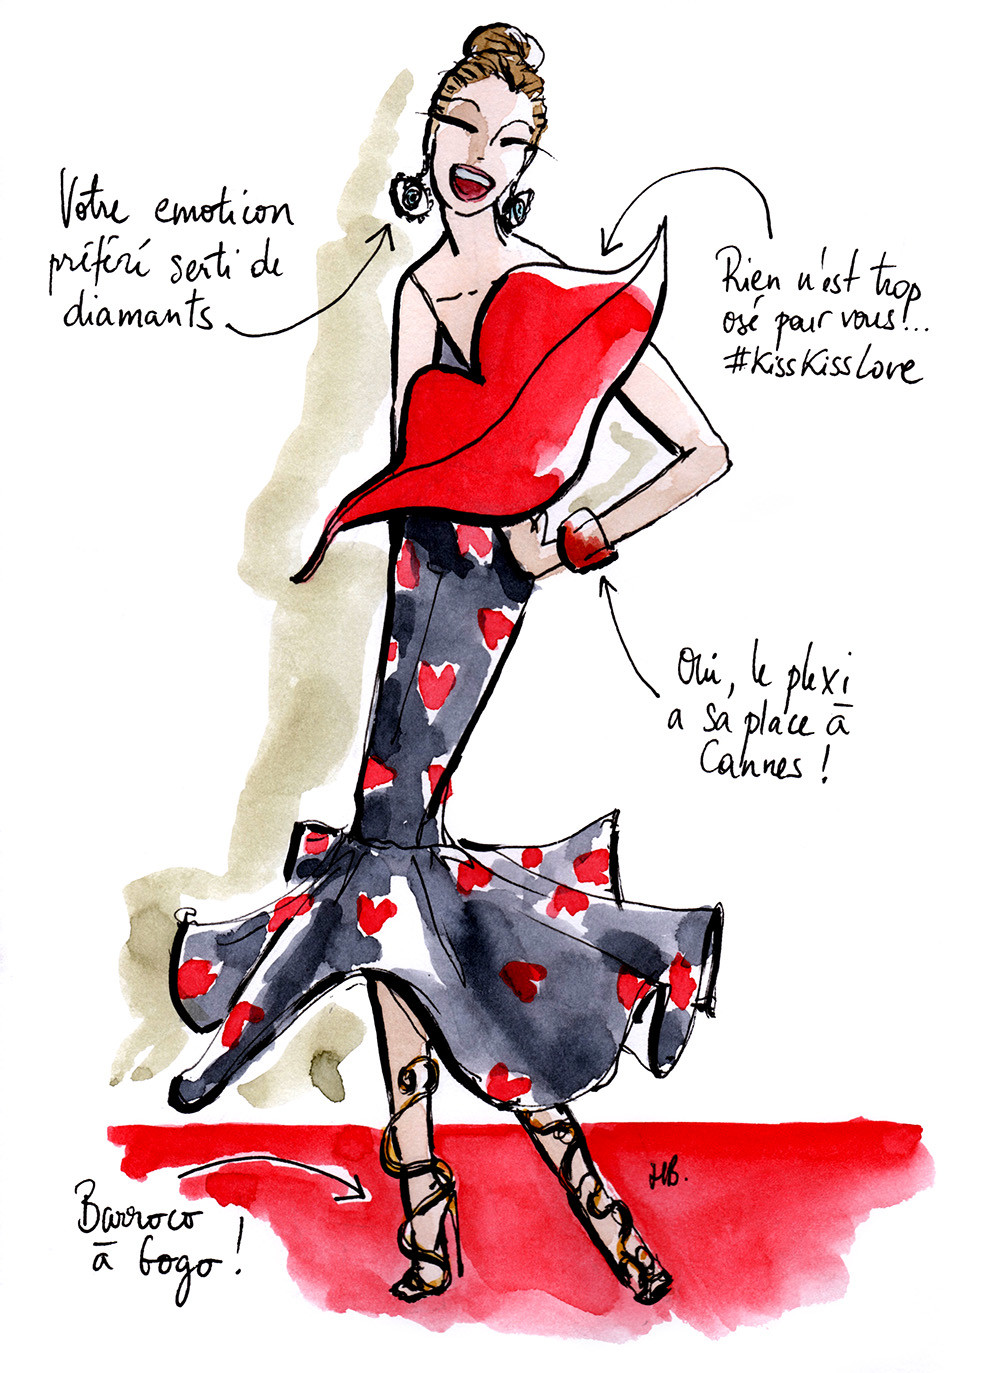 Tenue Festival de Cannes - L'excentrique - Dessin/Illustration Habile Buston